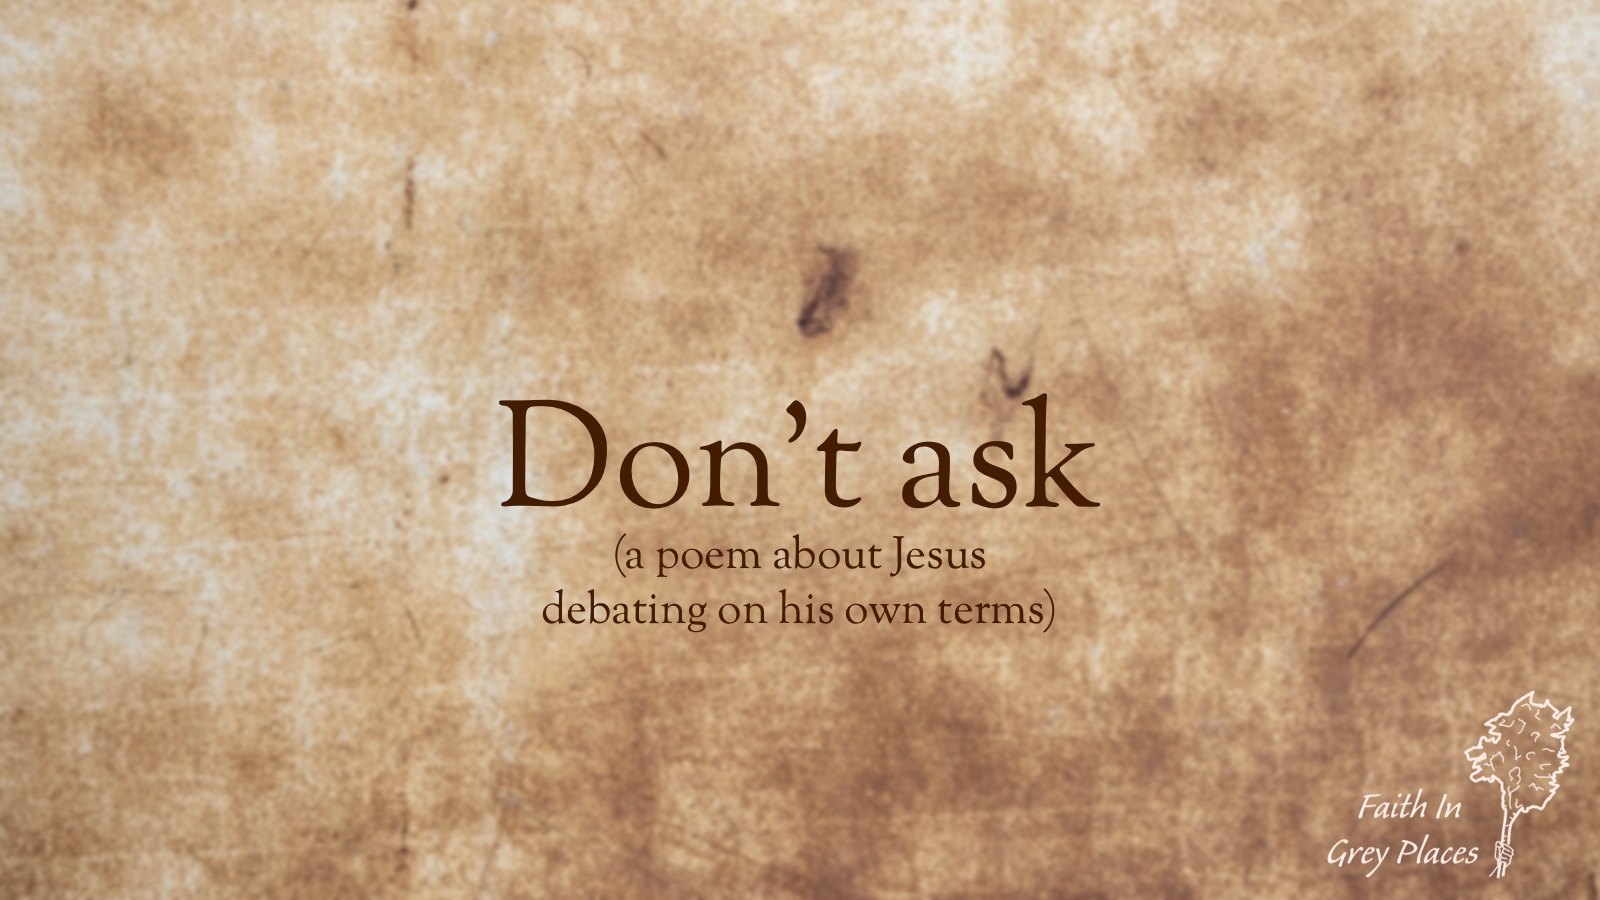 Brown parchment background with text over the top: Don't ask (a poem about Jesus debating on his own terms) Faith in Grey Places